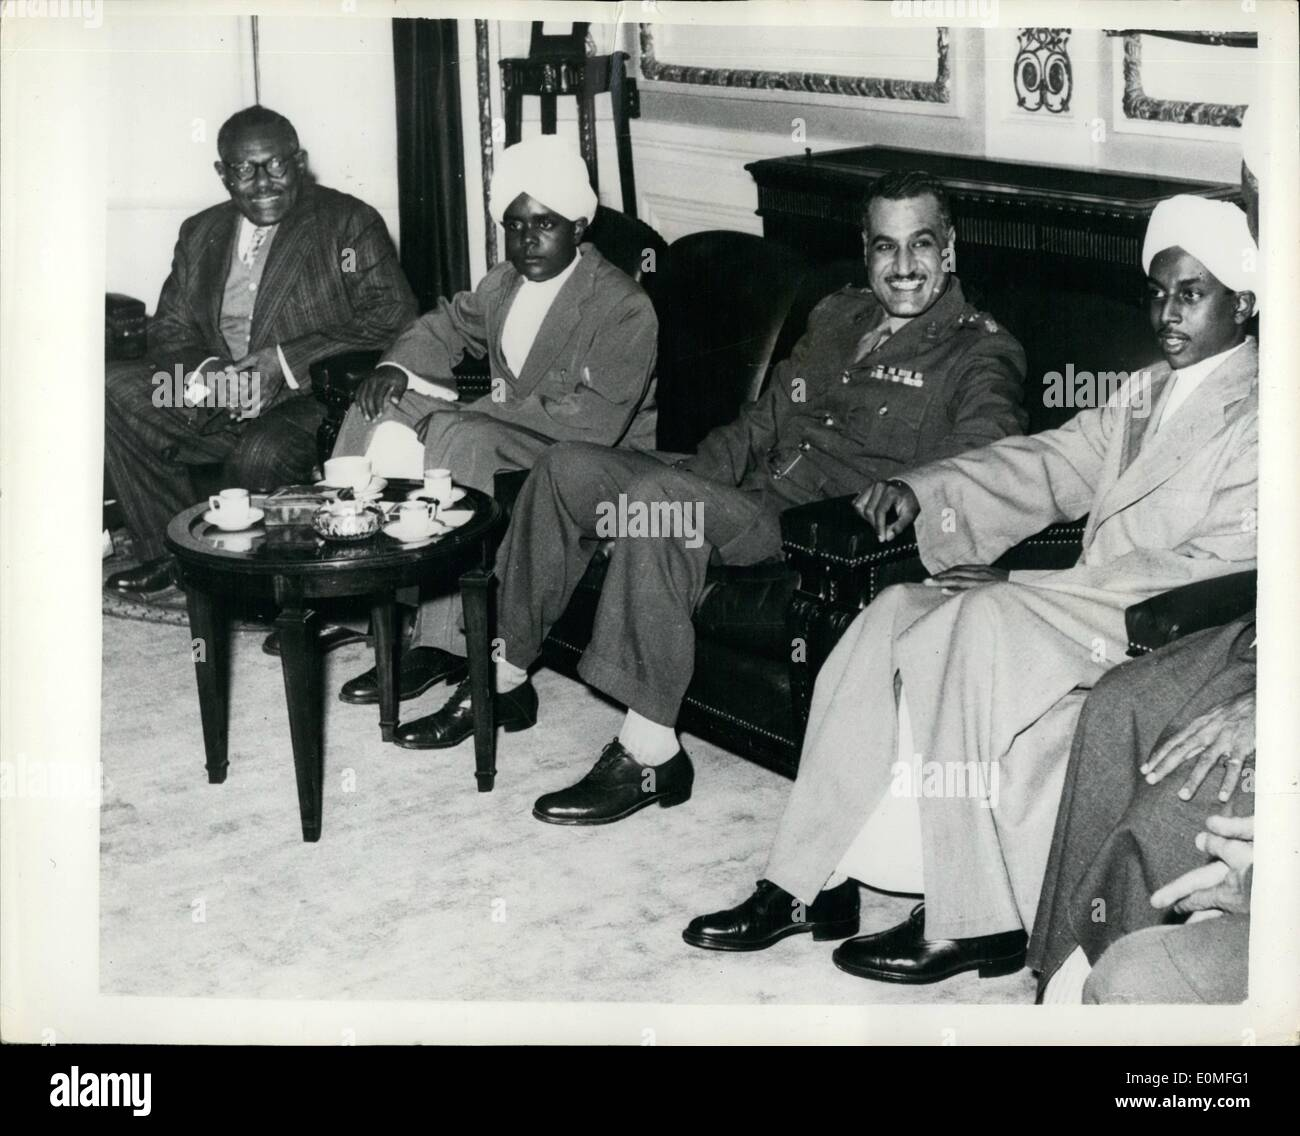 Dec. 12, 1954 - Sudanese Leaders visit Egyptian Premier: The Sudanese Prime Minister, Mtre. Ismail El Azhary, accompanied - Stock Image